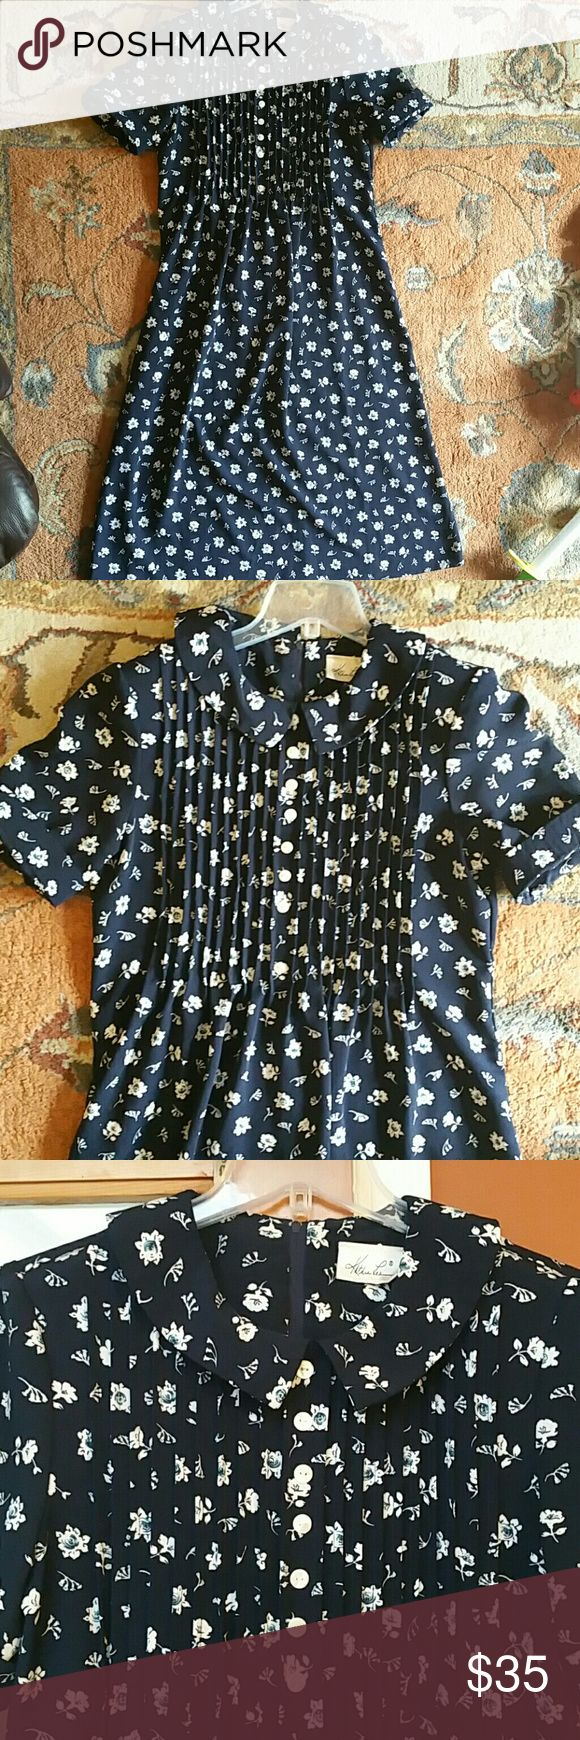 Vintage floral dress size 10 navy and cream Stunning floral peter oan collar with pleats and buttons up top. Long midi or maxi for a short person.  Zips up in back. Polyester no flaws. Vintage  10 Dresses